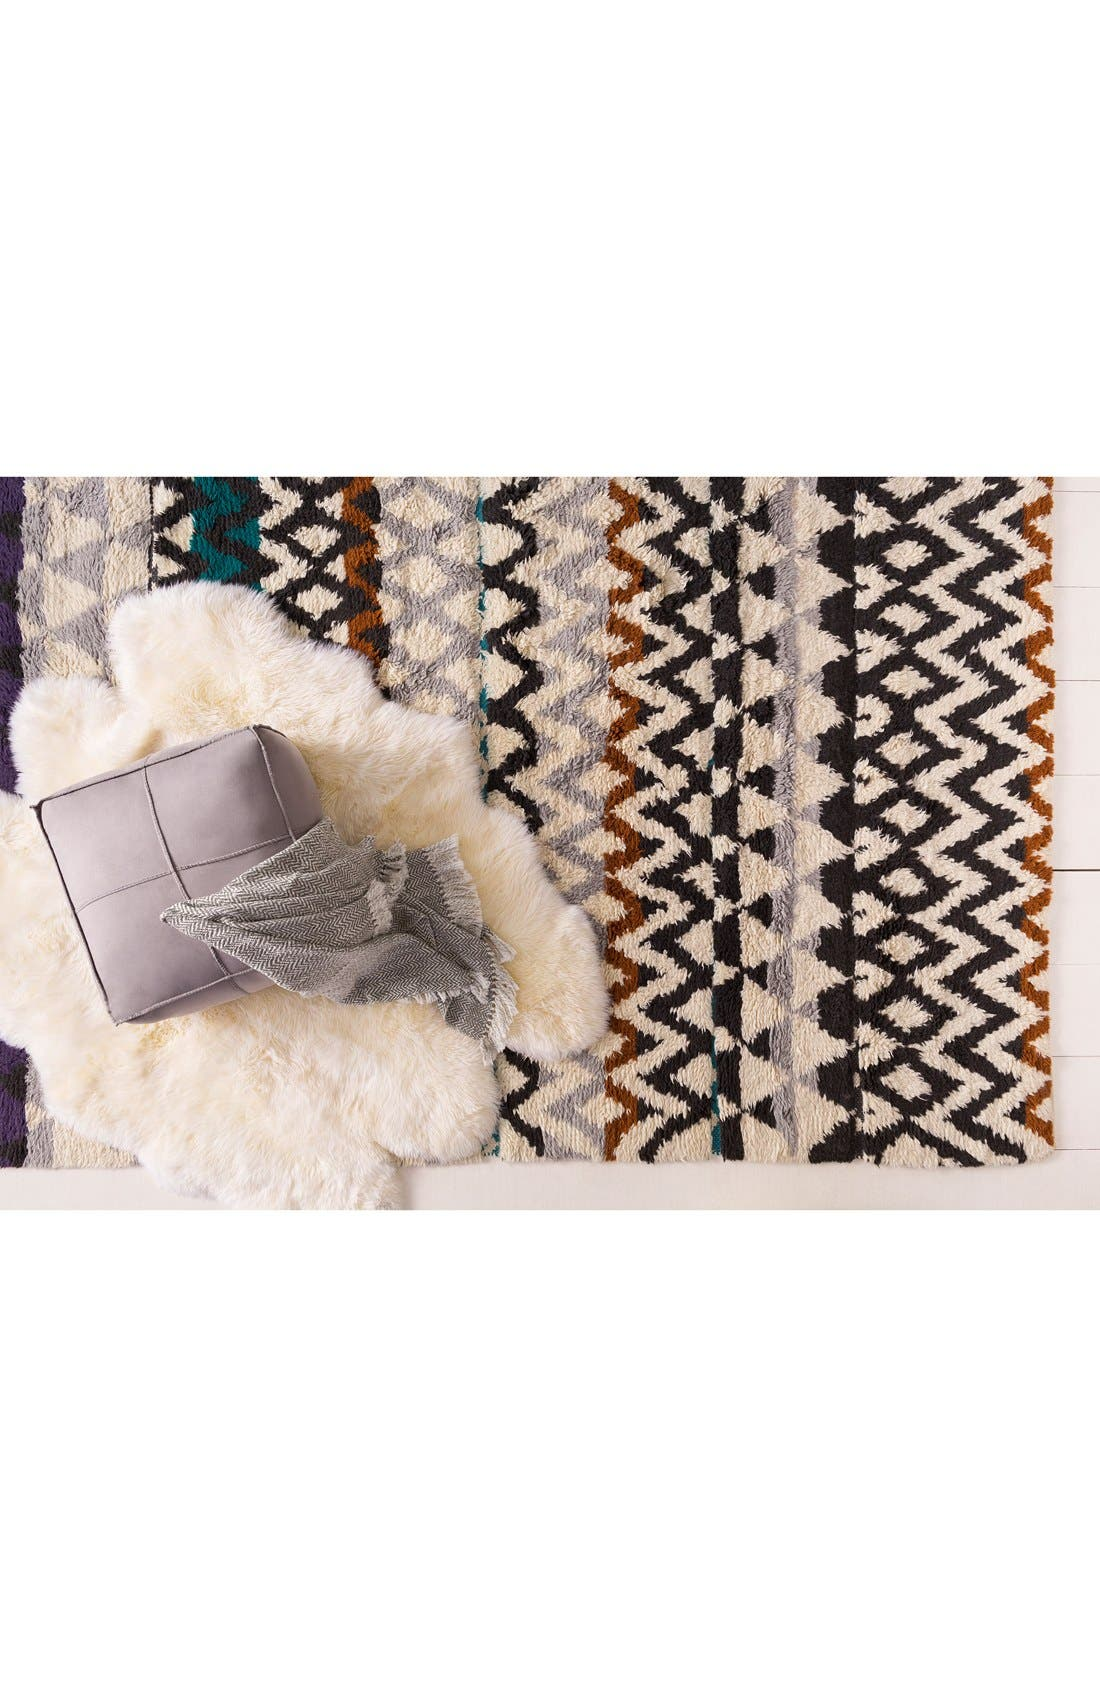 'Atticus' Hand Woven Wool Rug,                             Alternate thumbnail 3, color,                             500